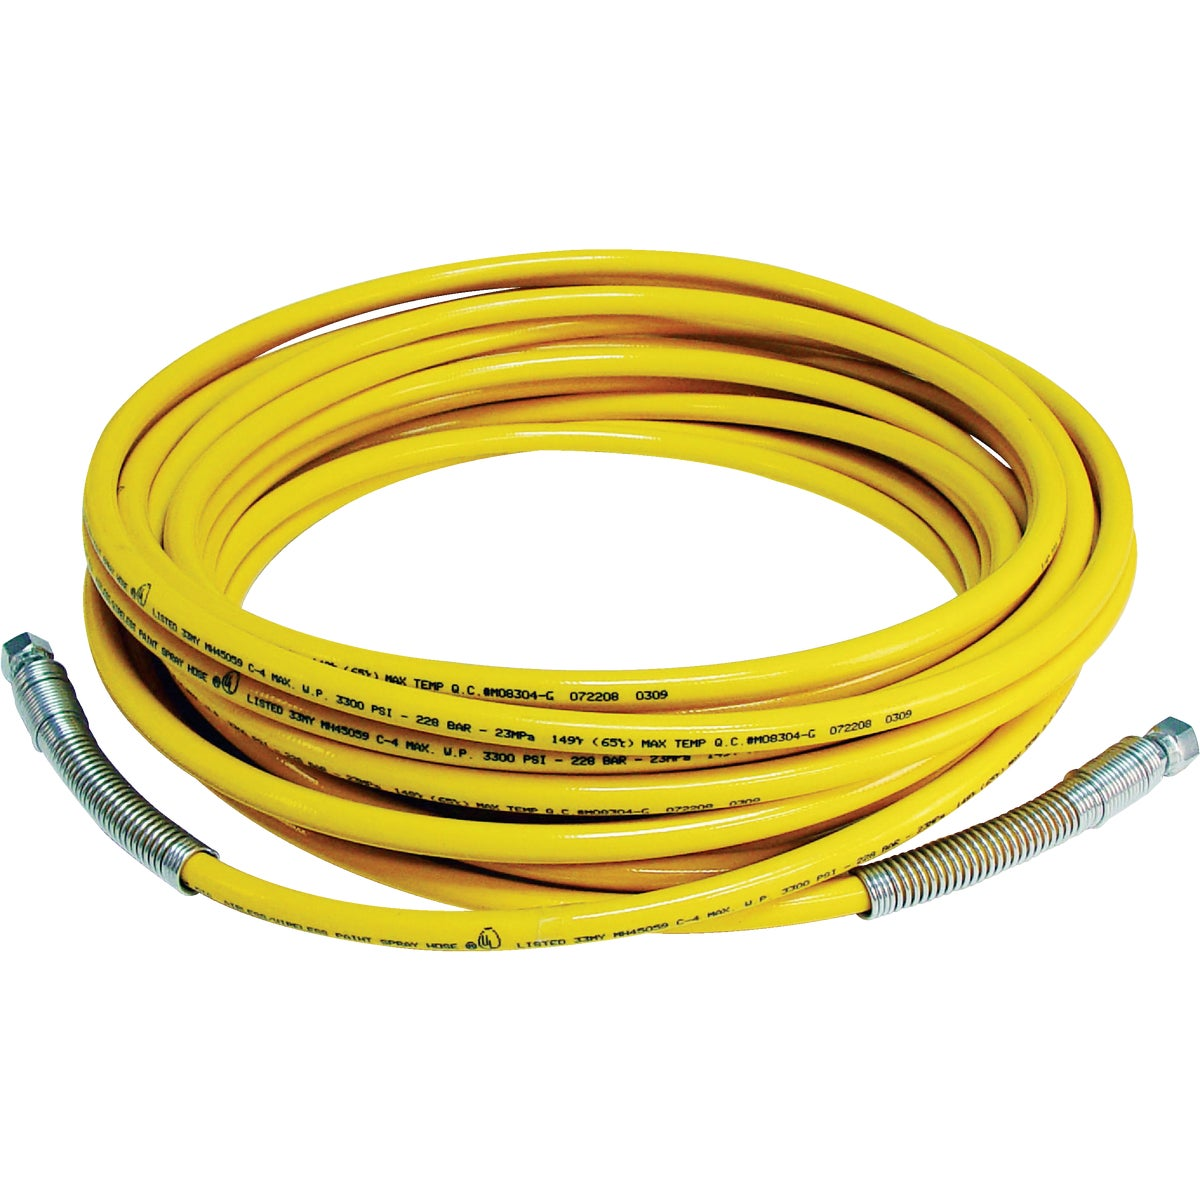 "1/4""X25' HIGH-PRESS HOSE - 0270192 by Wagner Spray Tech"